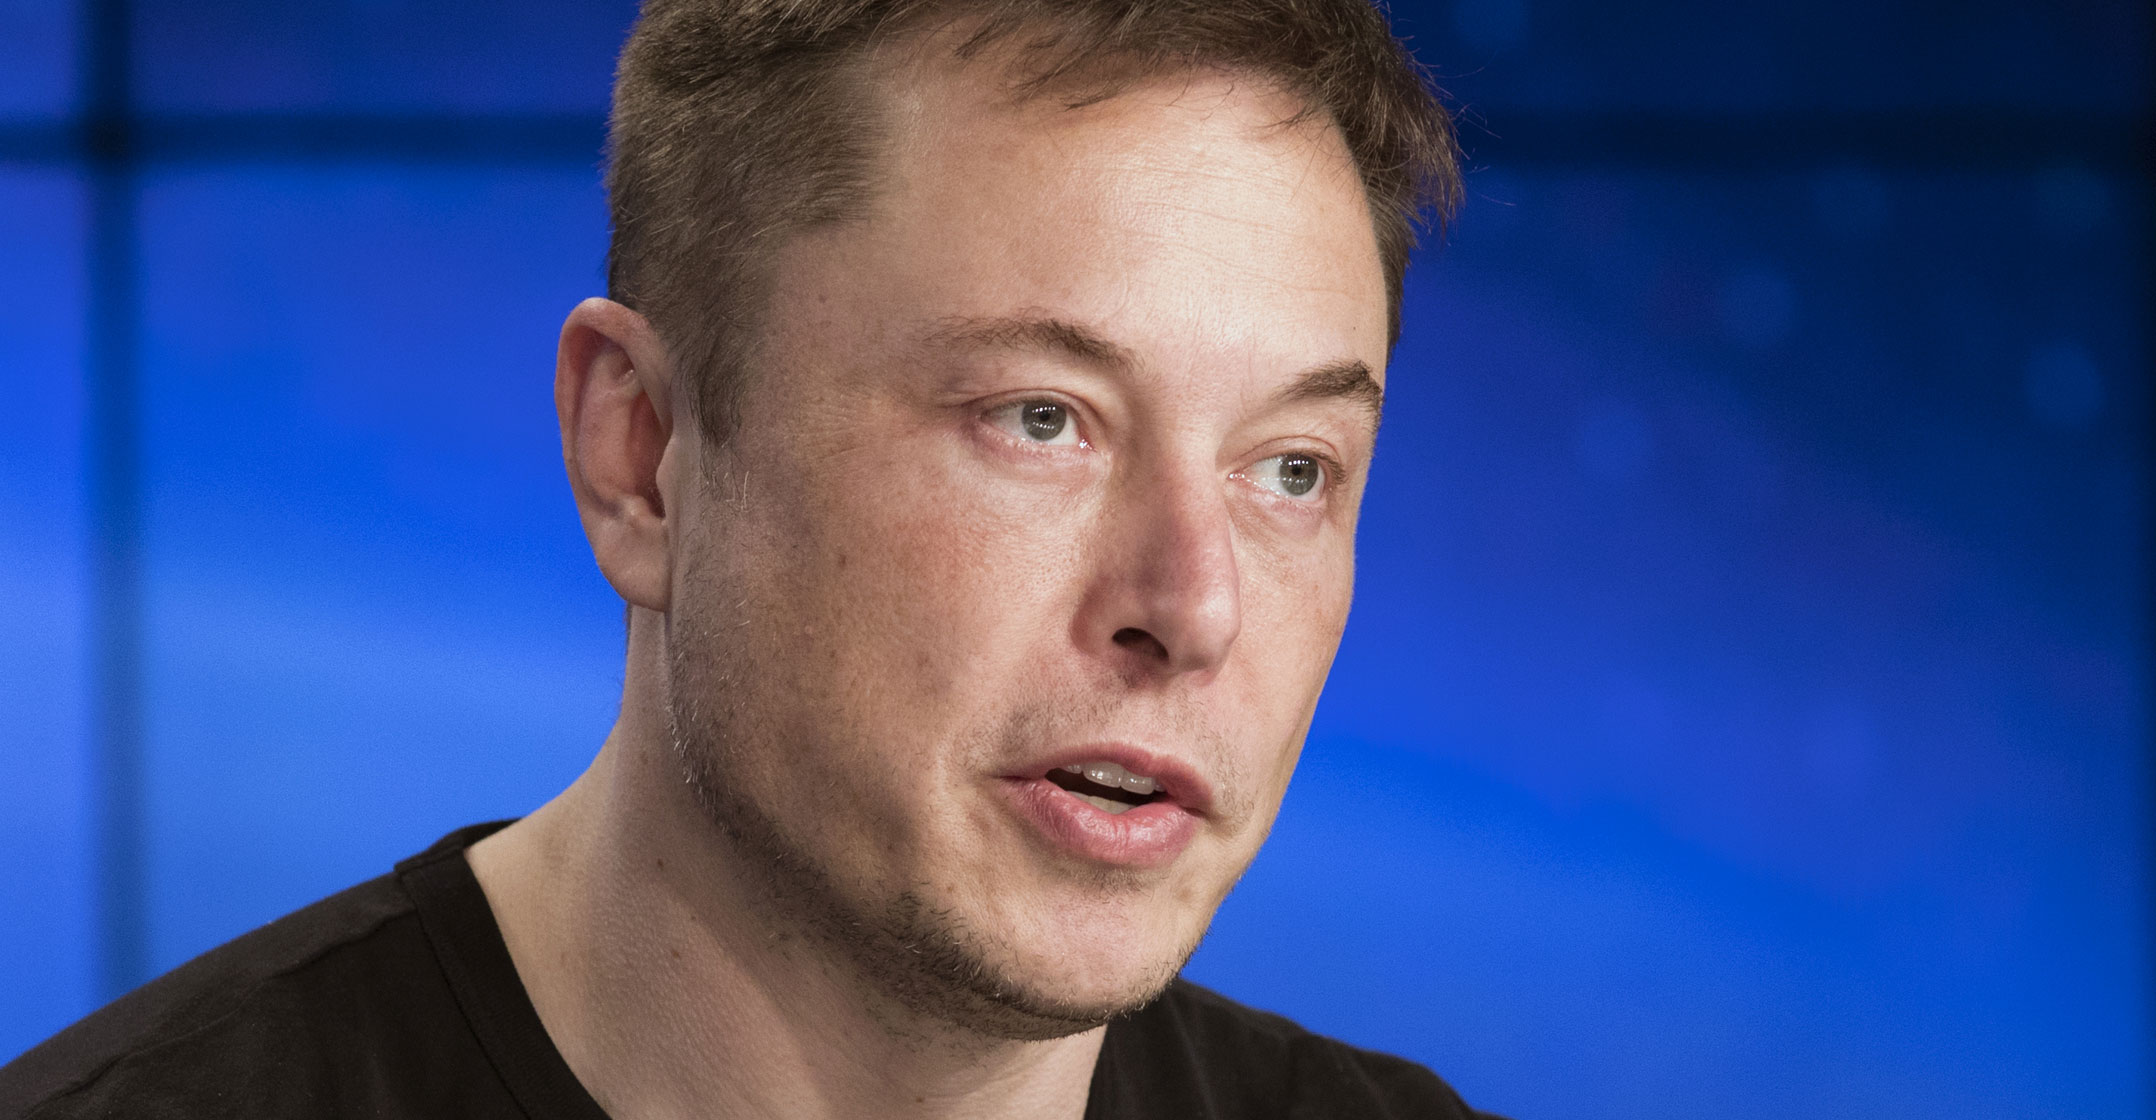 Upheaval tests if Musk can lead as well as dream - TechCentral